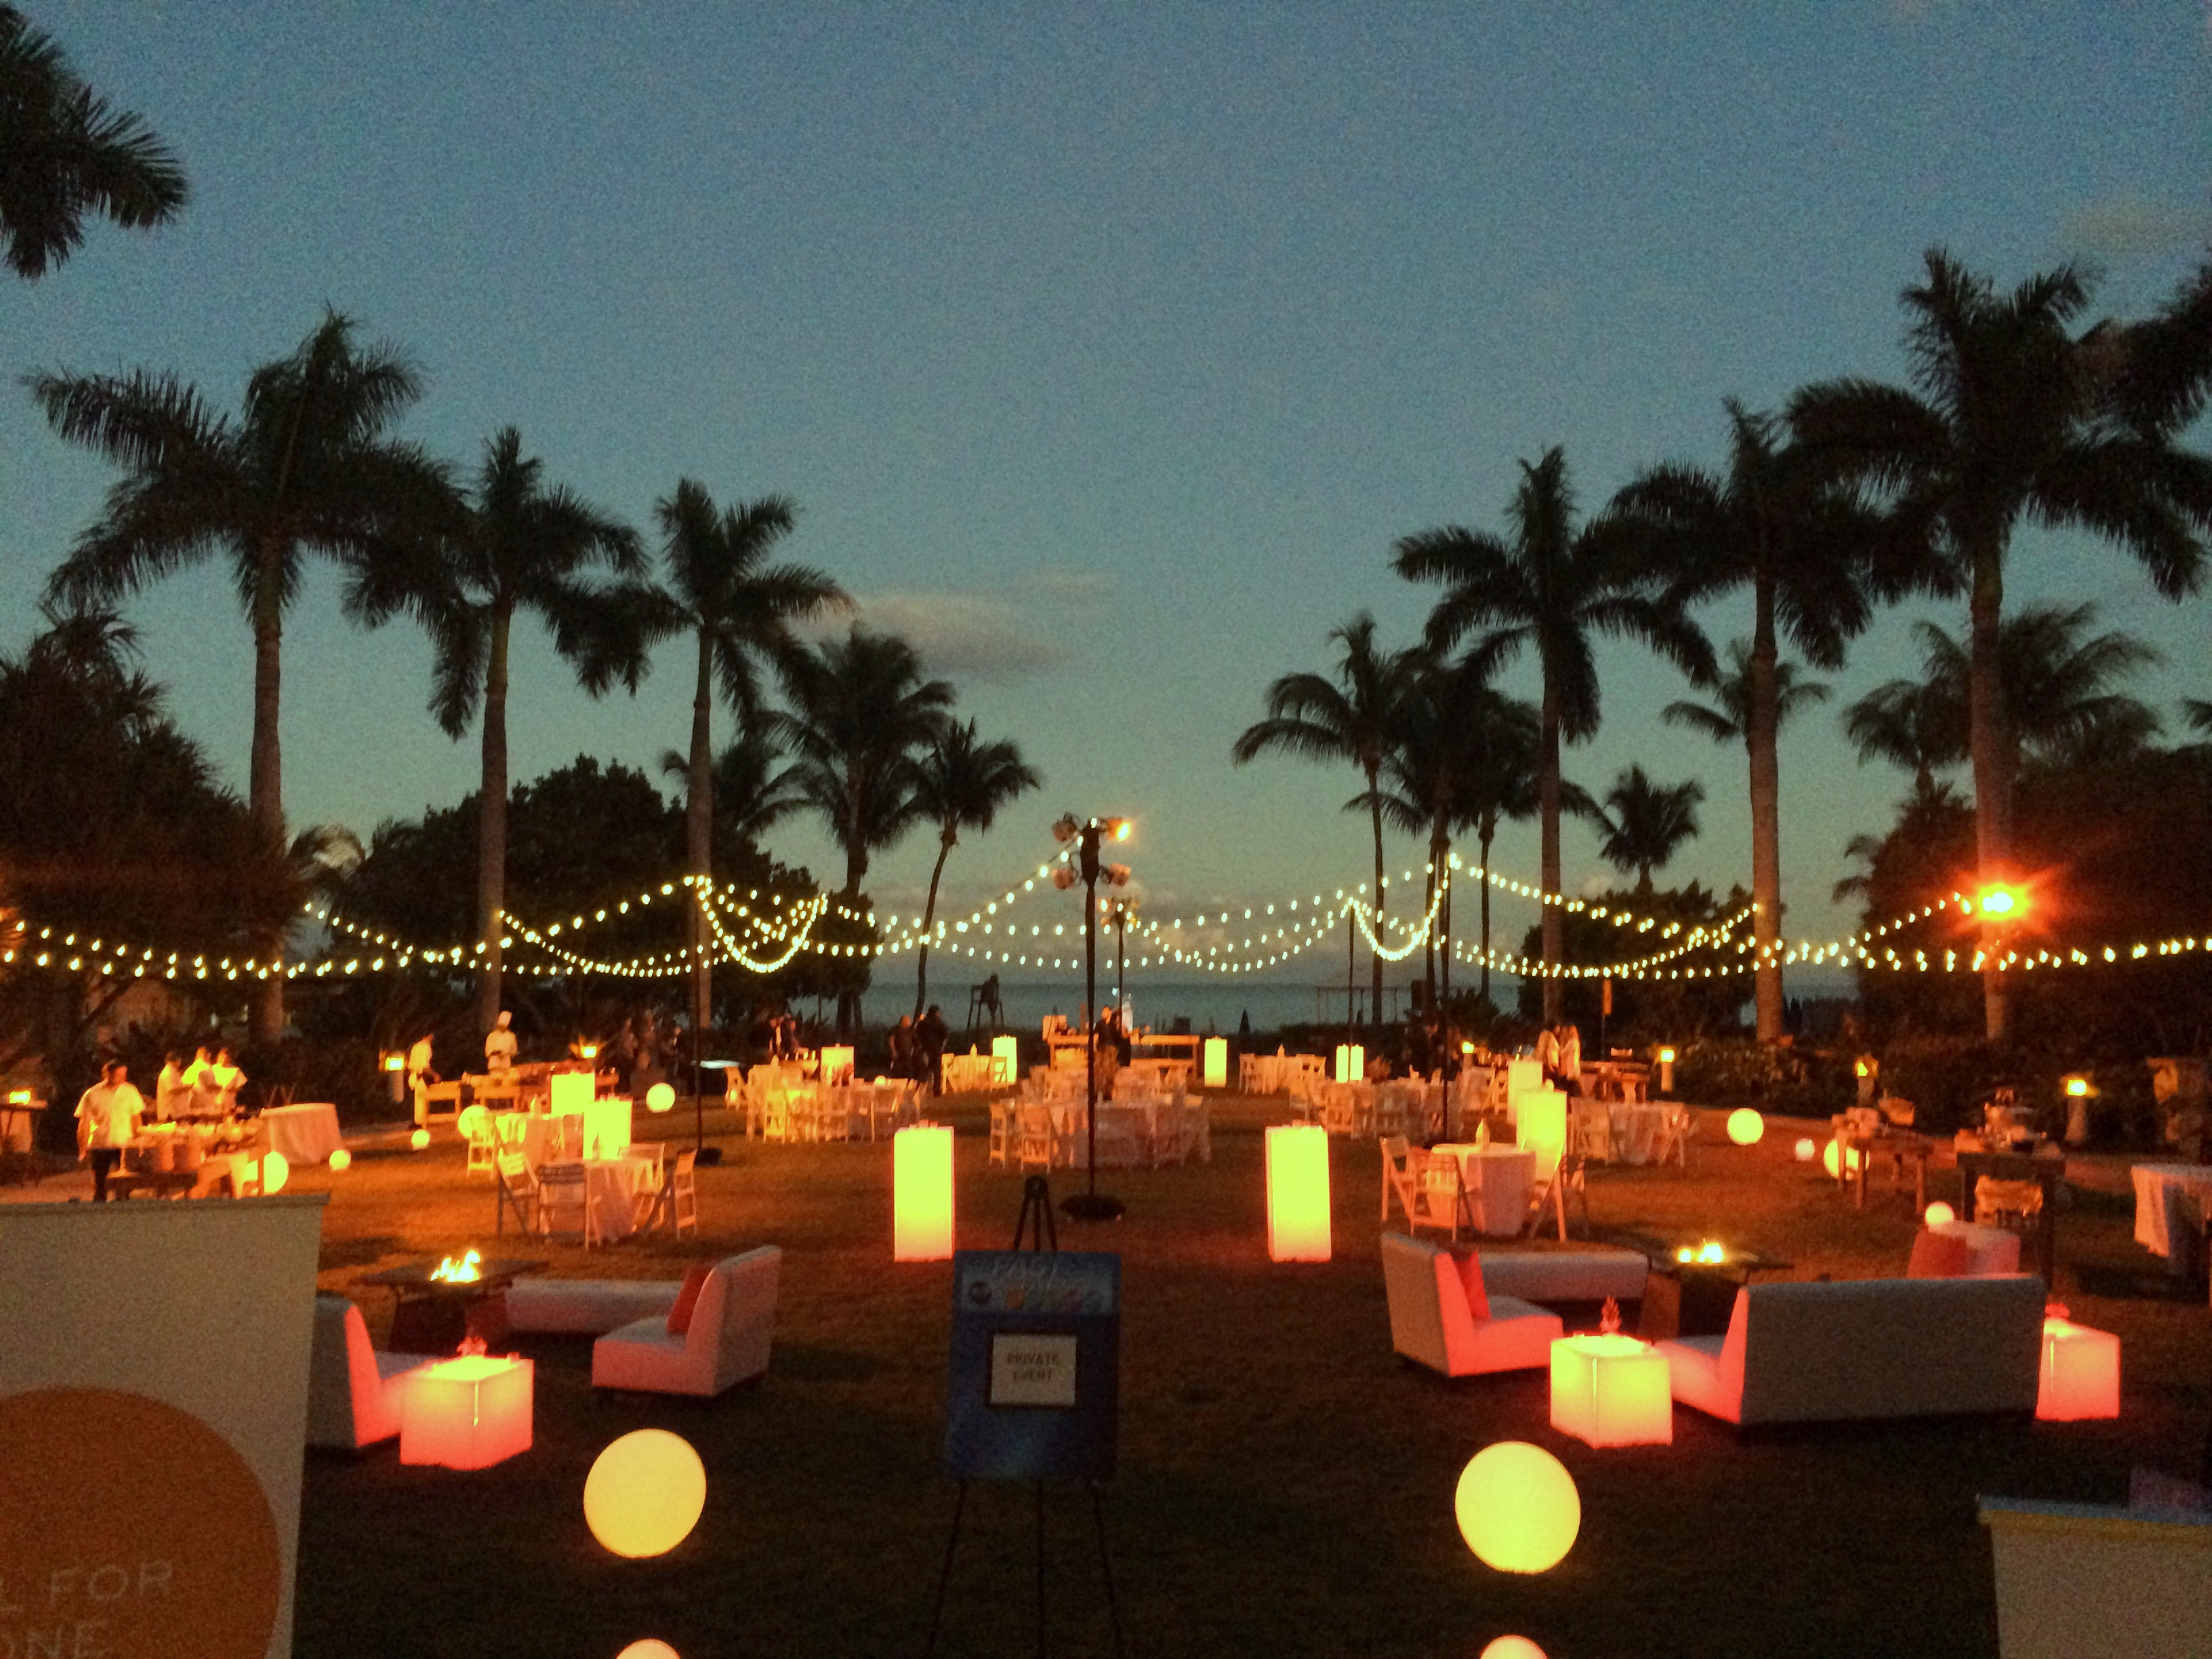 How To String Lights On A Palm Tree : Ambient and Perimeter Lighting - Advantage Destination and Meeting Services